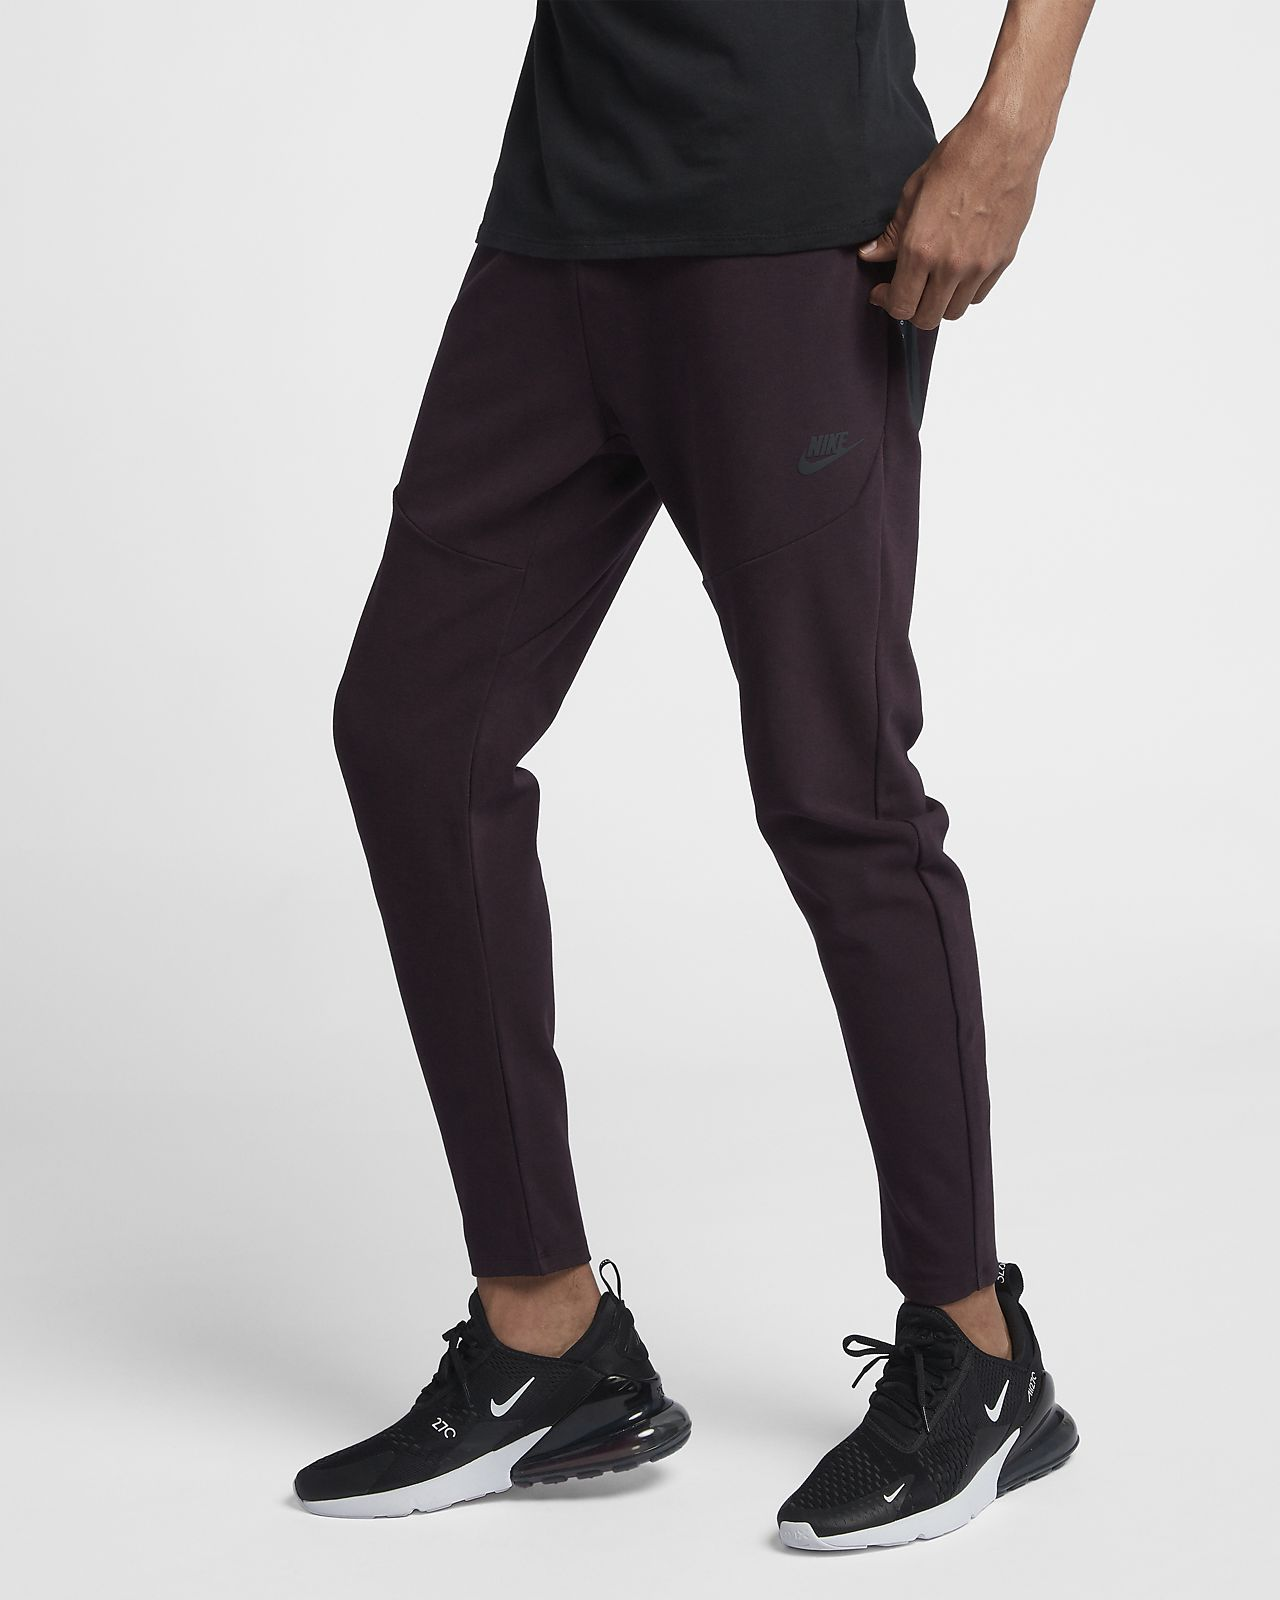 c26dbafb20 Nike Sportswear Tech Pack Men s Trousers. Nike.com CH